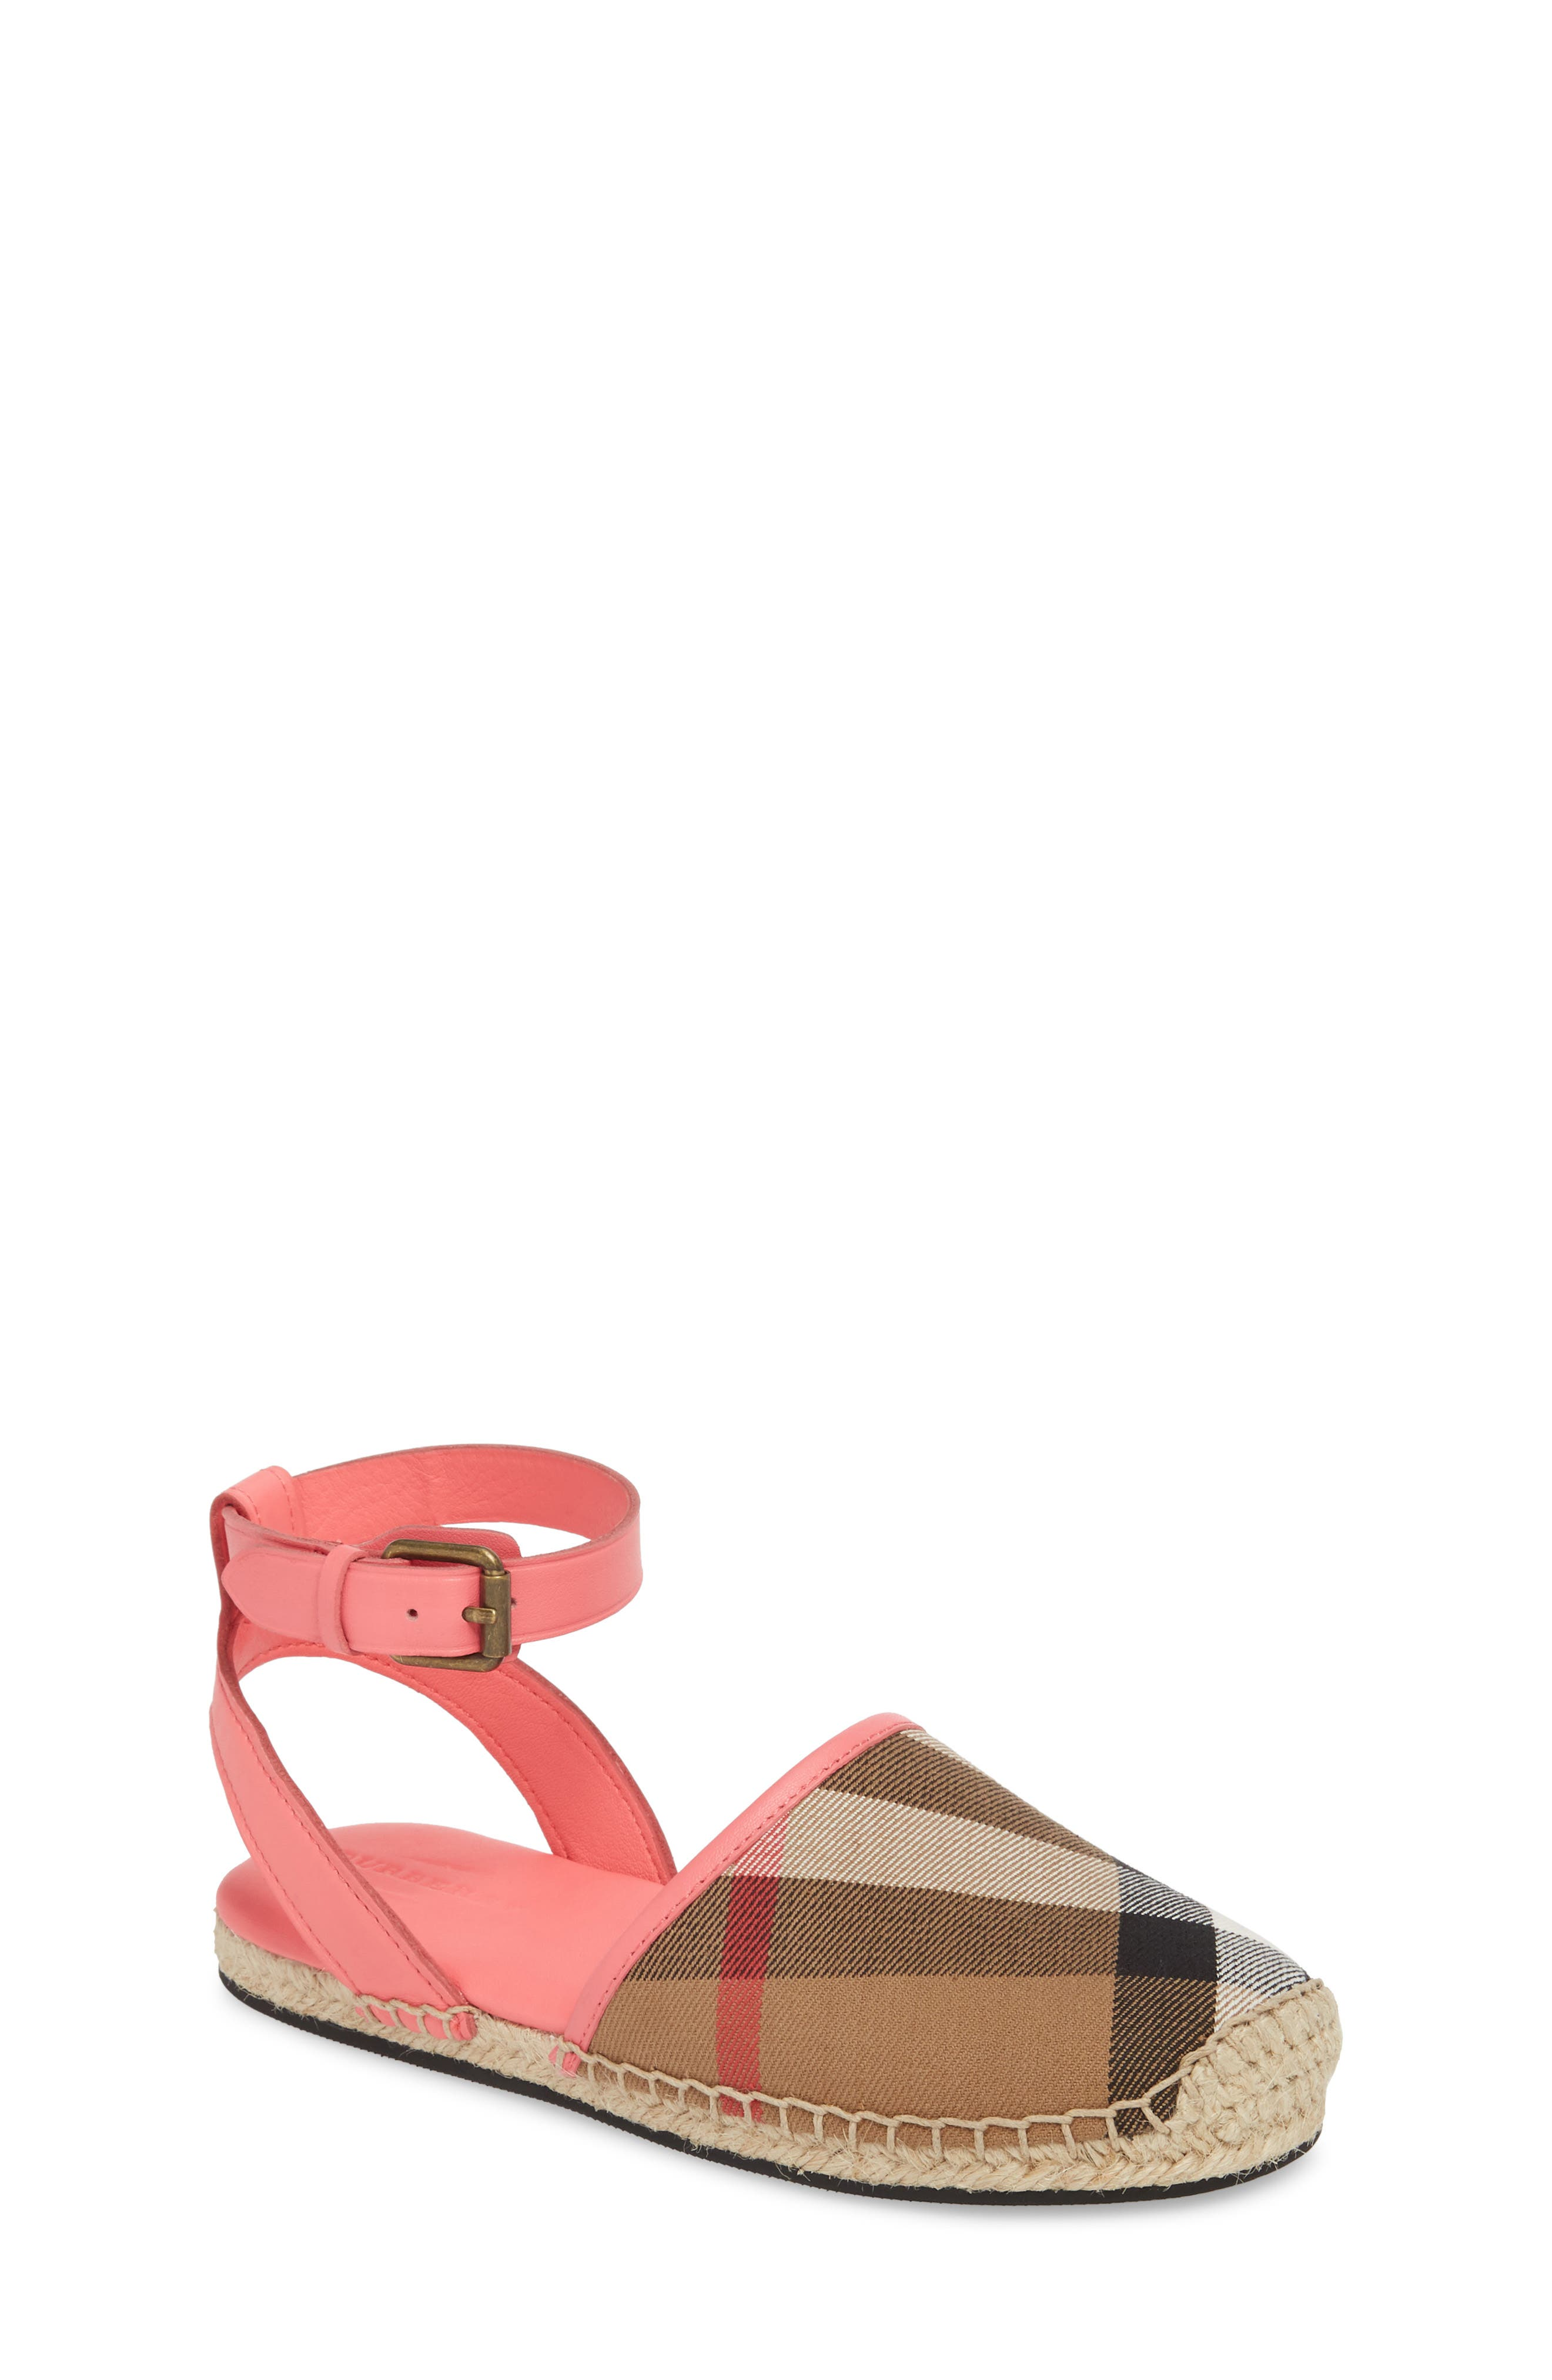 New Perth Espadrille Sandal,                         Main,                         color, Bright Peony Rose